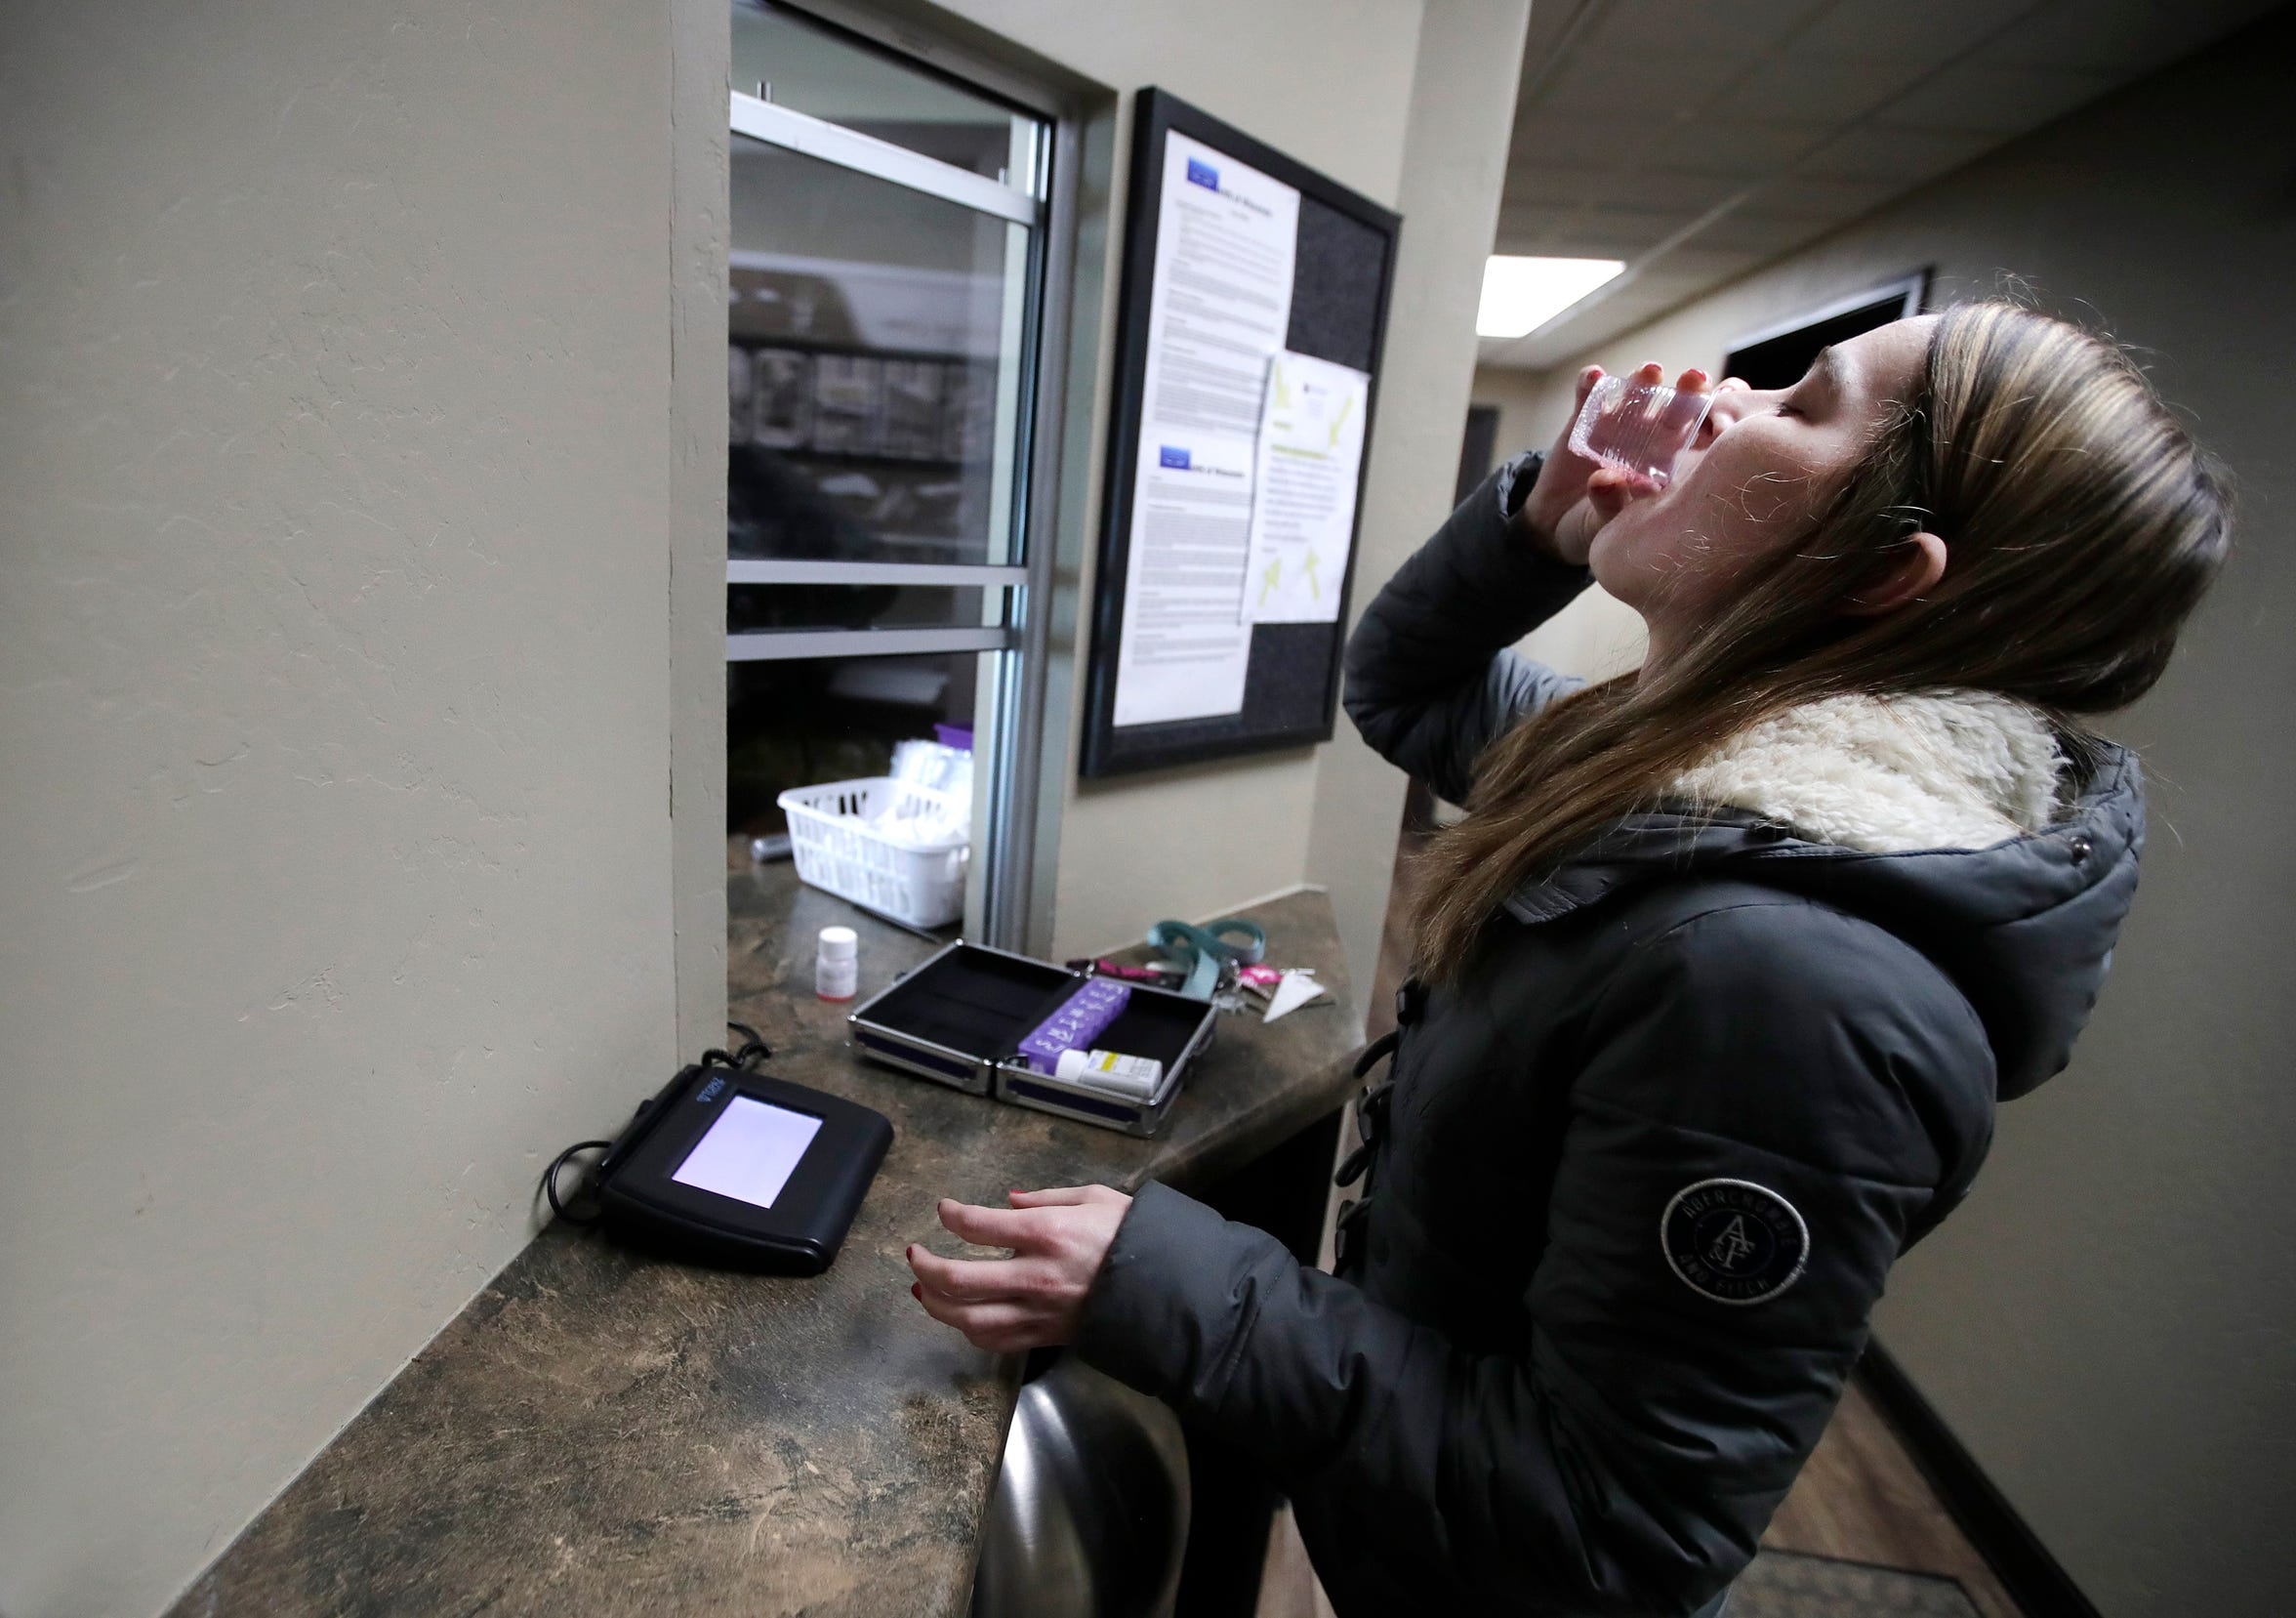 Bridget Petrie takes a dose of methadone after her counseling session at Addiction Medical Solutions, an opioid treatment program in Oshkosh.